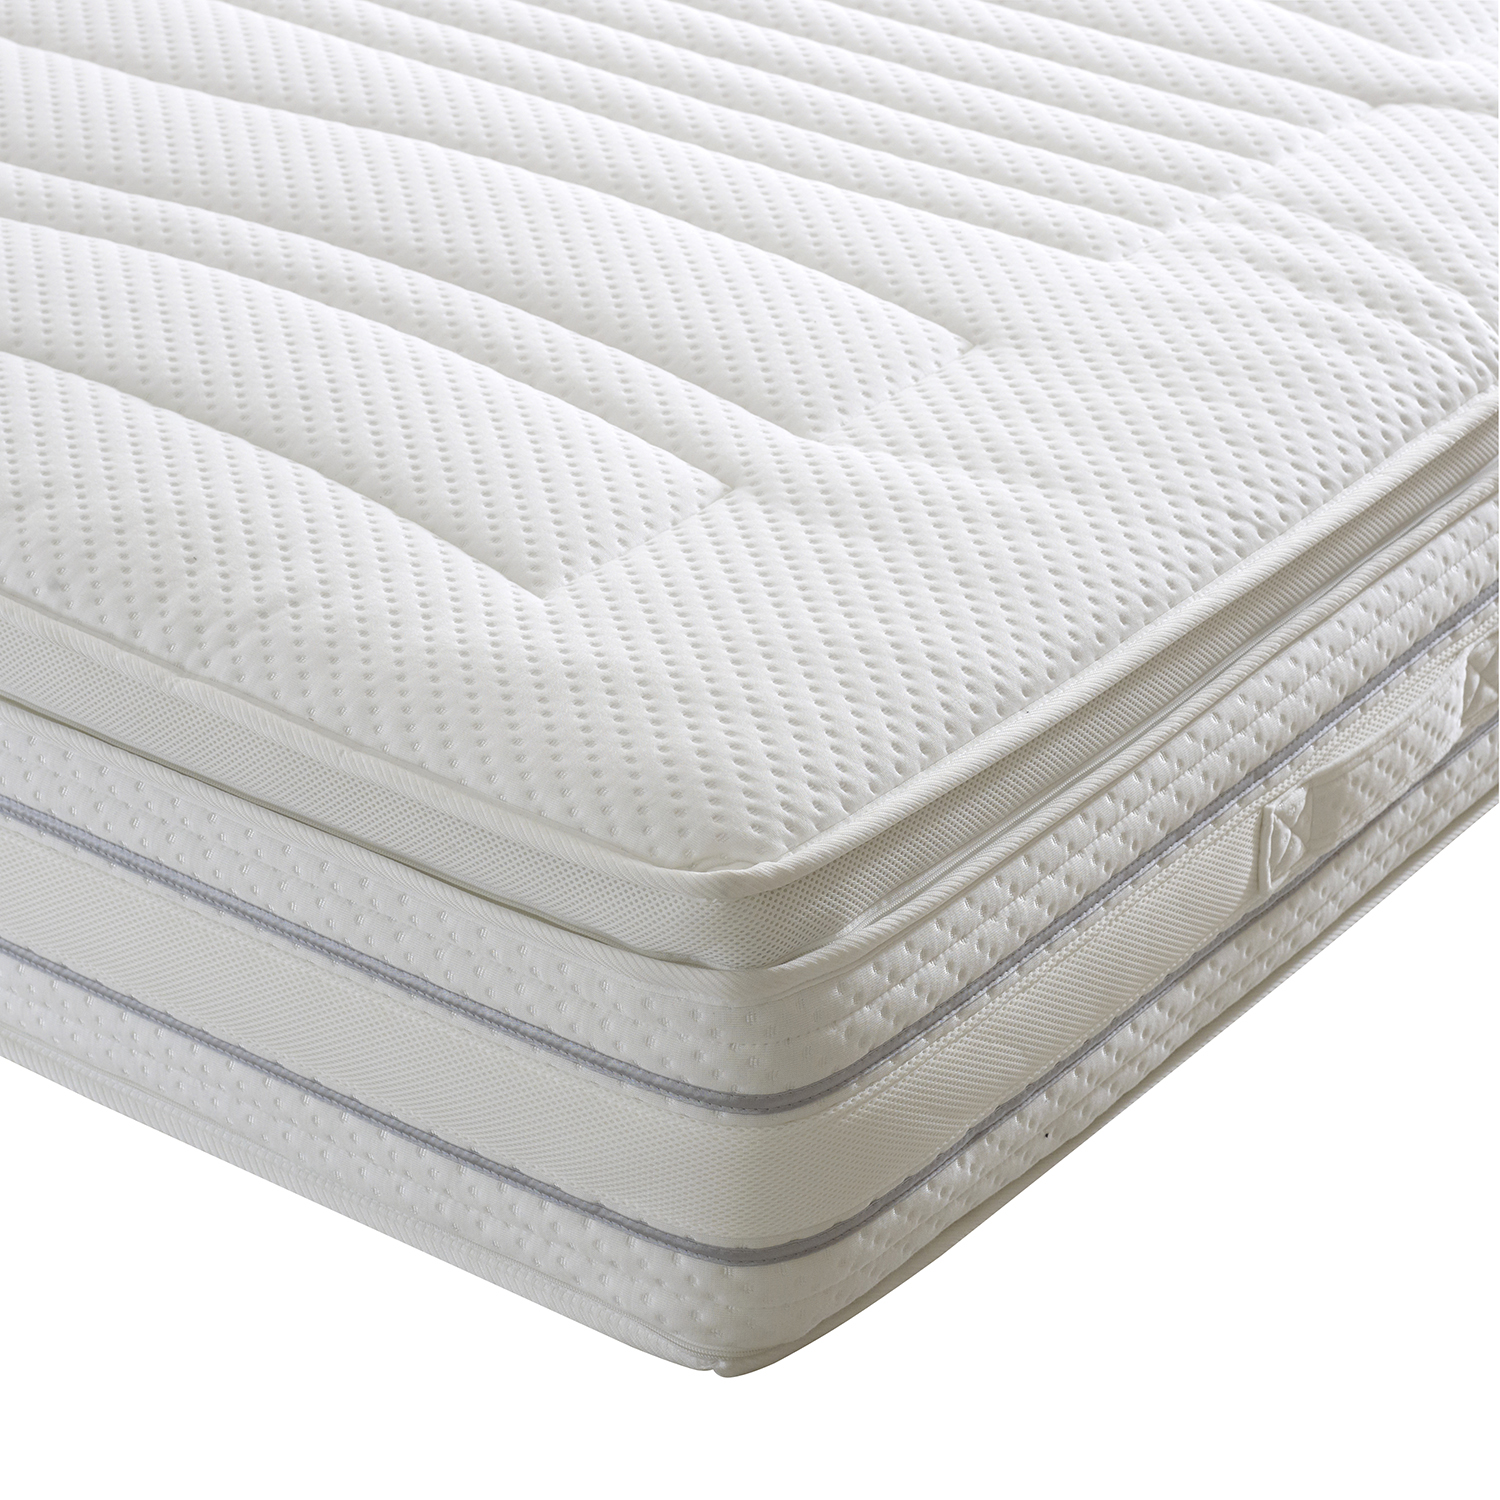 Shire Active Response Care Latex Foam Mattress from £449